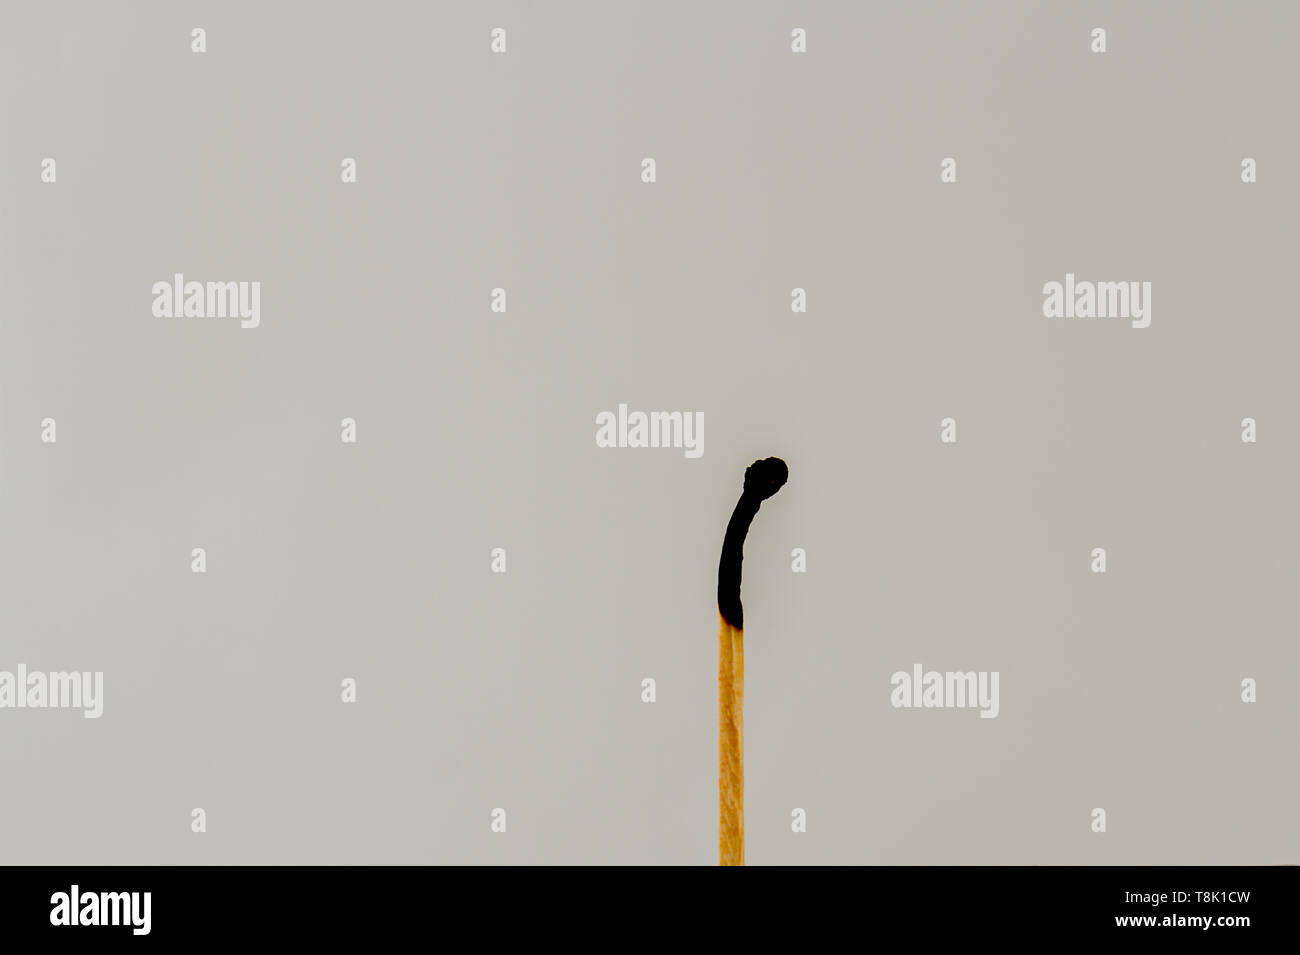 A burnt out match isolated against a clear background image with copy space in landscape format - Stock Image